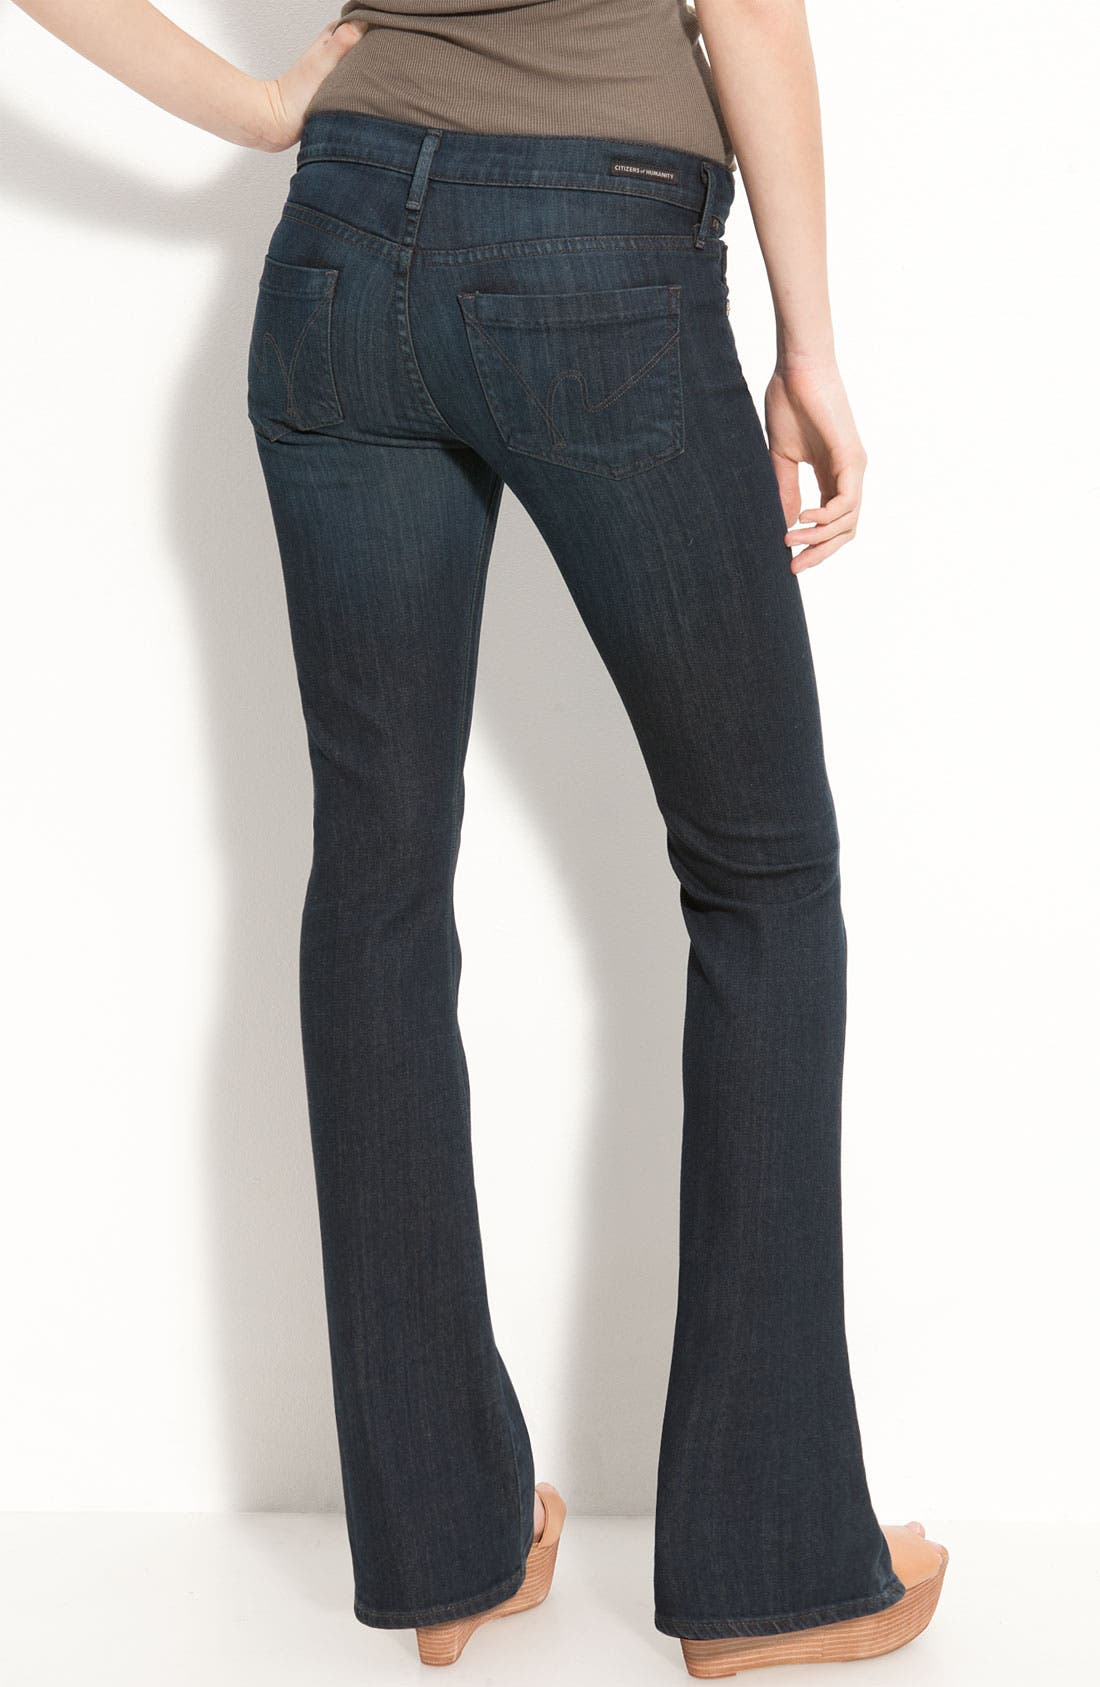 Main Image - Citizens of Humanity 'Dita' Bootcut Jeans (Jupiter Wash) (Petite)